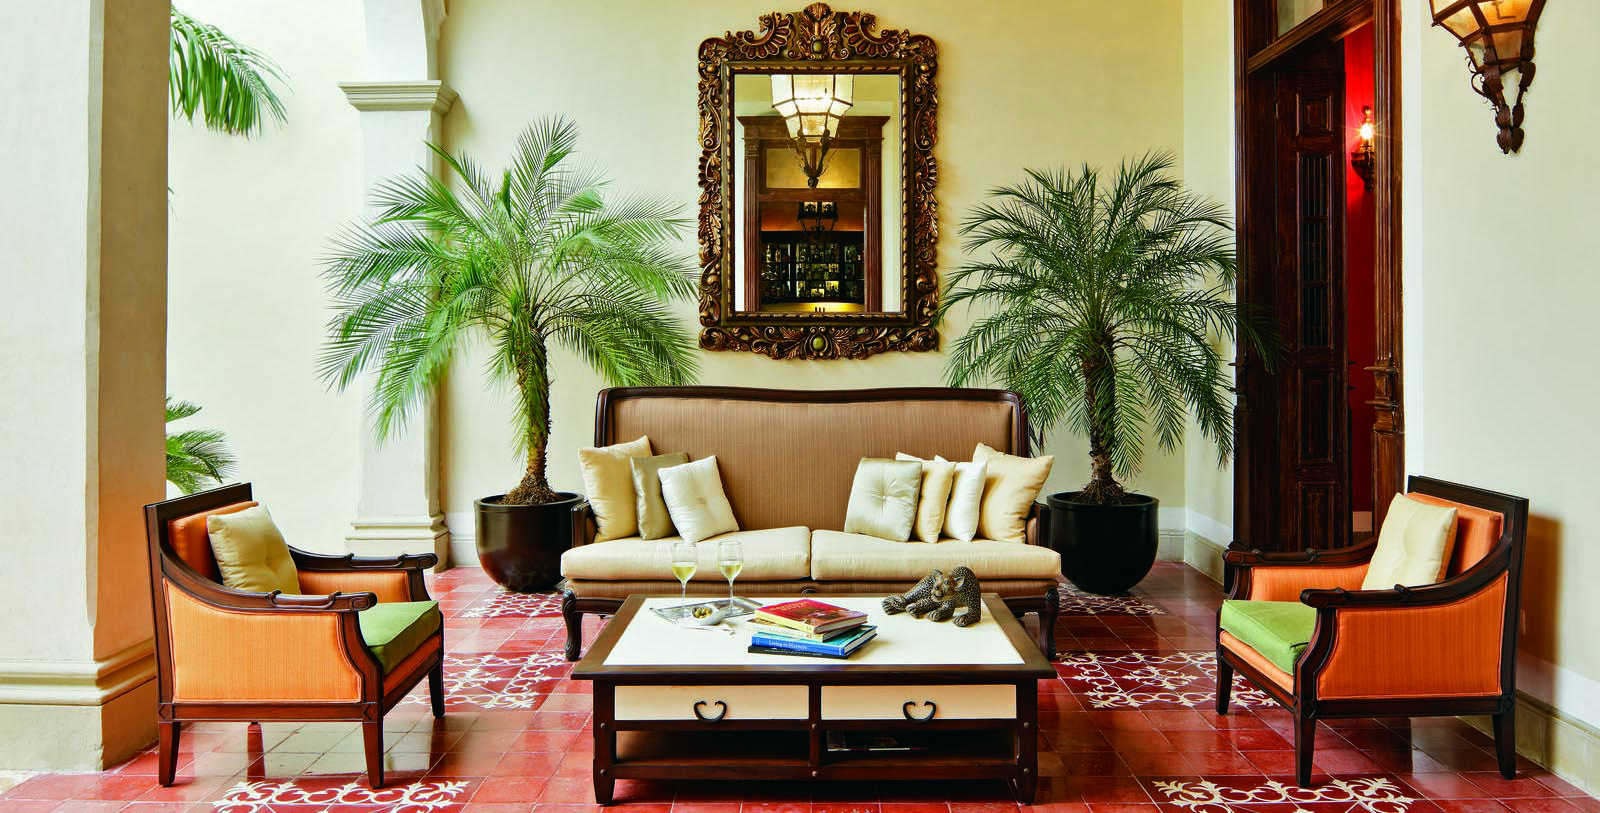 Image of lobby lounge seating area Casa Lecanda, 1900s, Member of Historic Hotels Worldwide, in Merida, Mexico, Discover